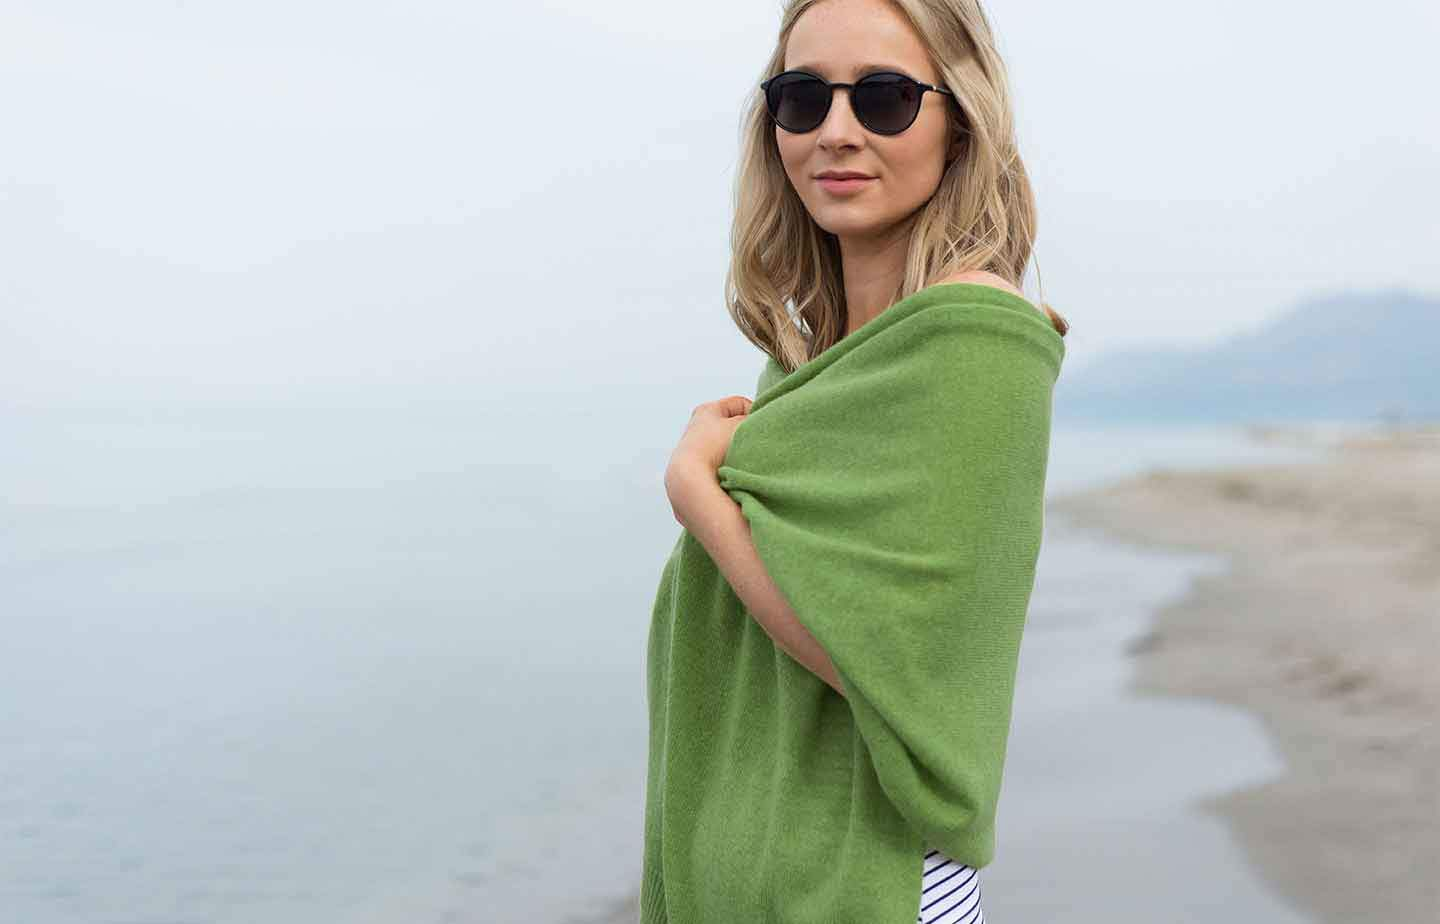 Women-standing-on-a-beach-with-blue-sky-in-the-background-wearing-sunglasses-and-clutching-a-green-cashmere-wrap-around-her-shoulders